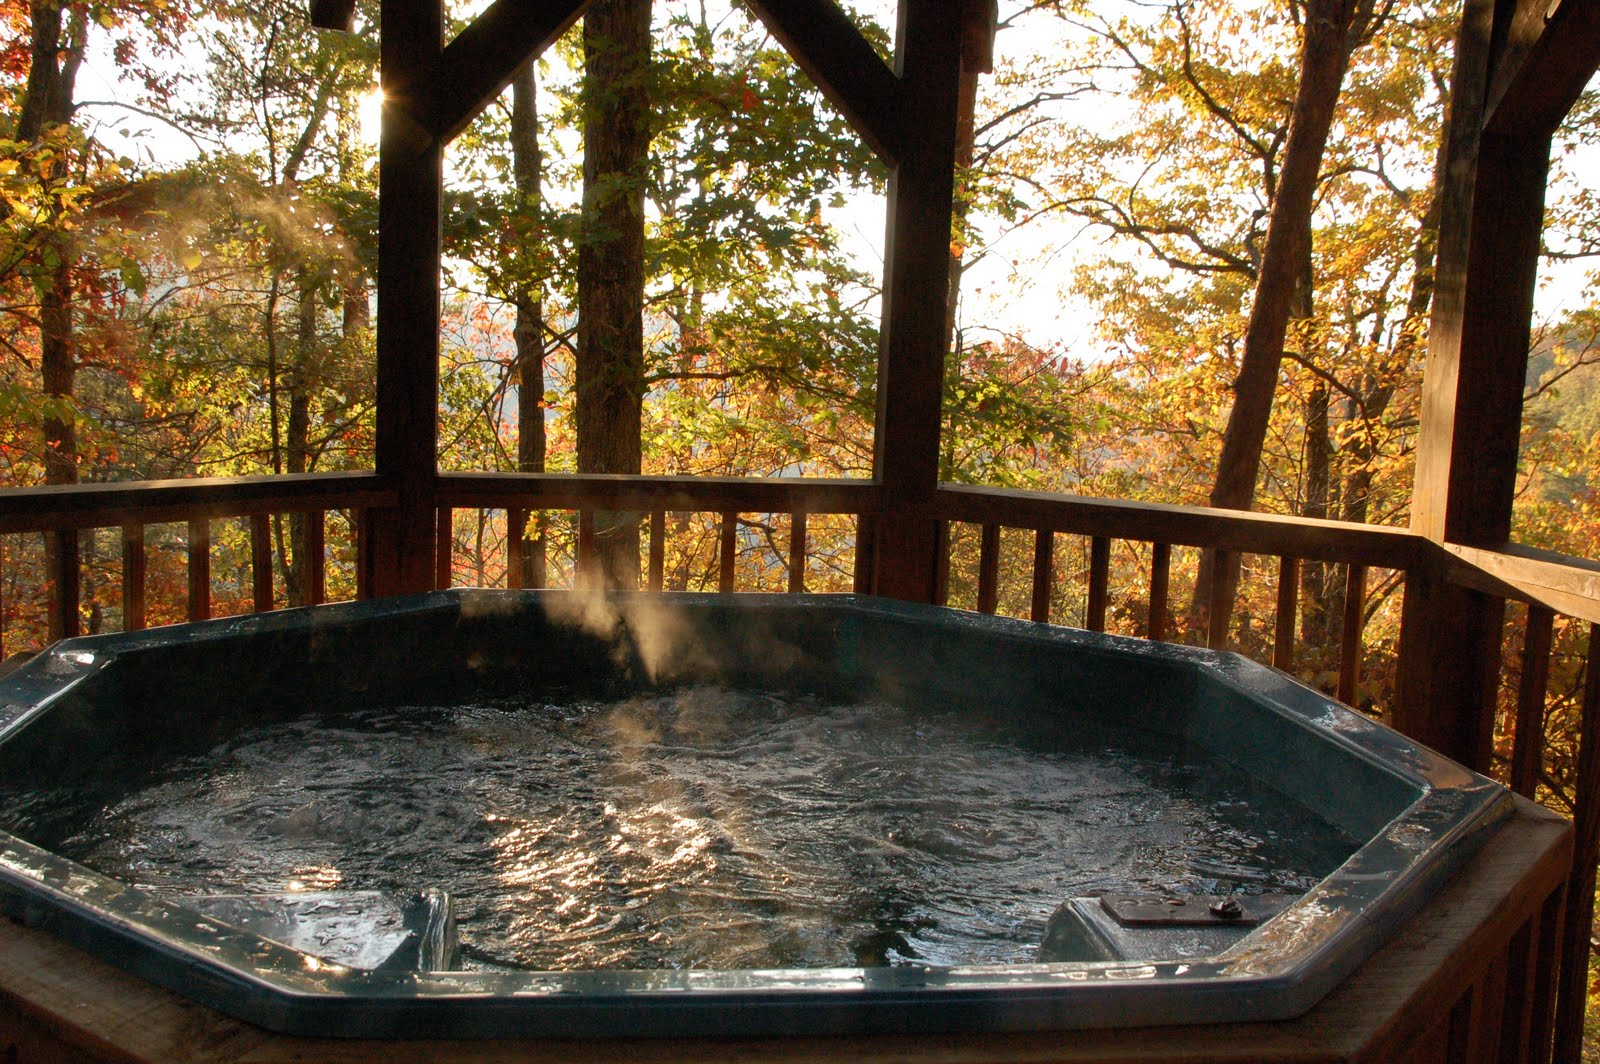 It Isnu0027t Too Early To Reserve Rooms Or A Gatlinburg Hot Tub Cabin For Your  Autumn Fun In The Smokies. We Are Close Enough To Jonesboro Storytelling  Festival ...